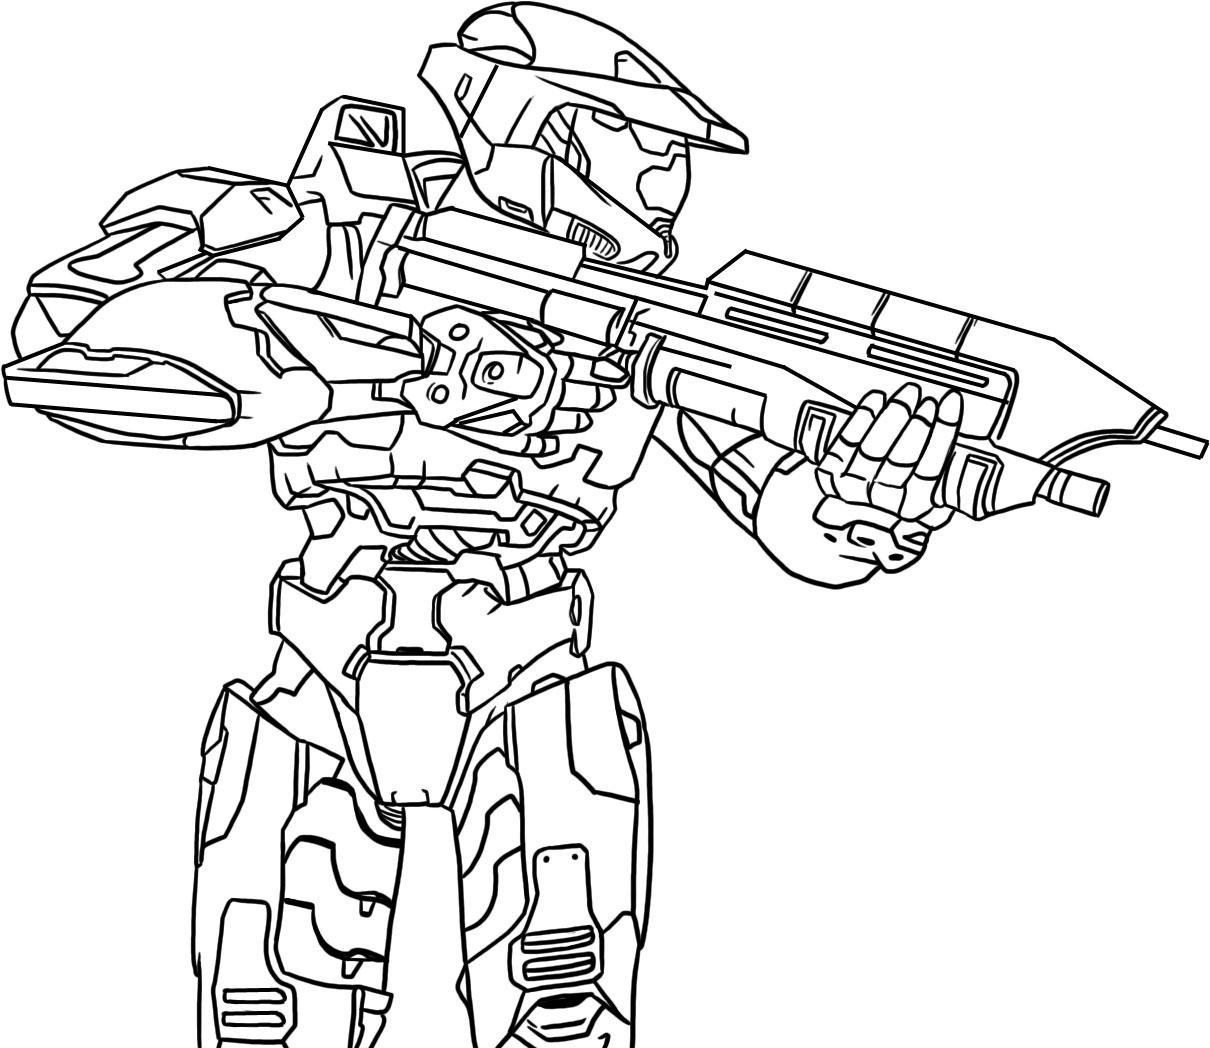 Halo Coloring Pages - ColoringPagesOnly.com